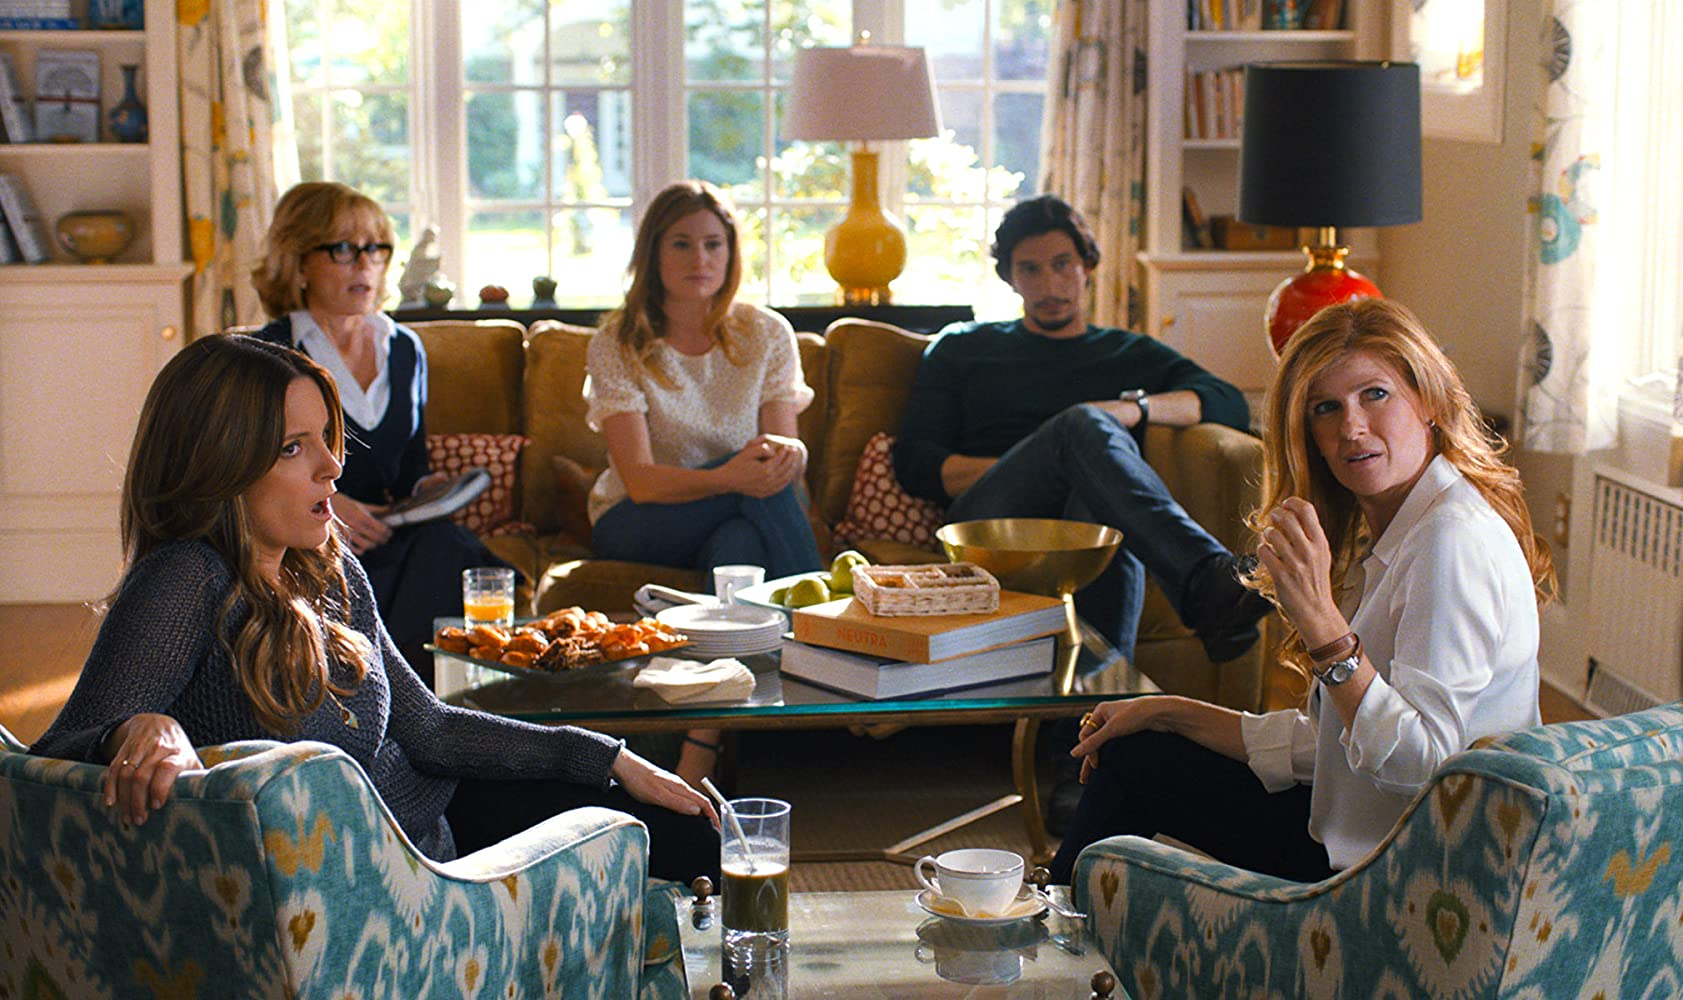 Jane Fonda, Connie Britton, Tina Fey, Kathryn Hahn, and Adam Driver in This Is Where I Leave You (2014)